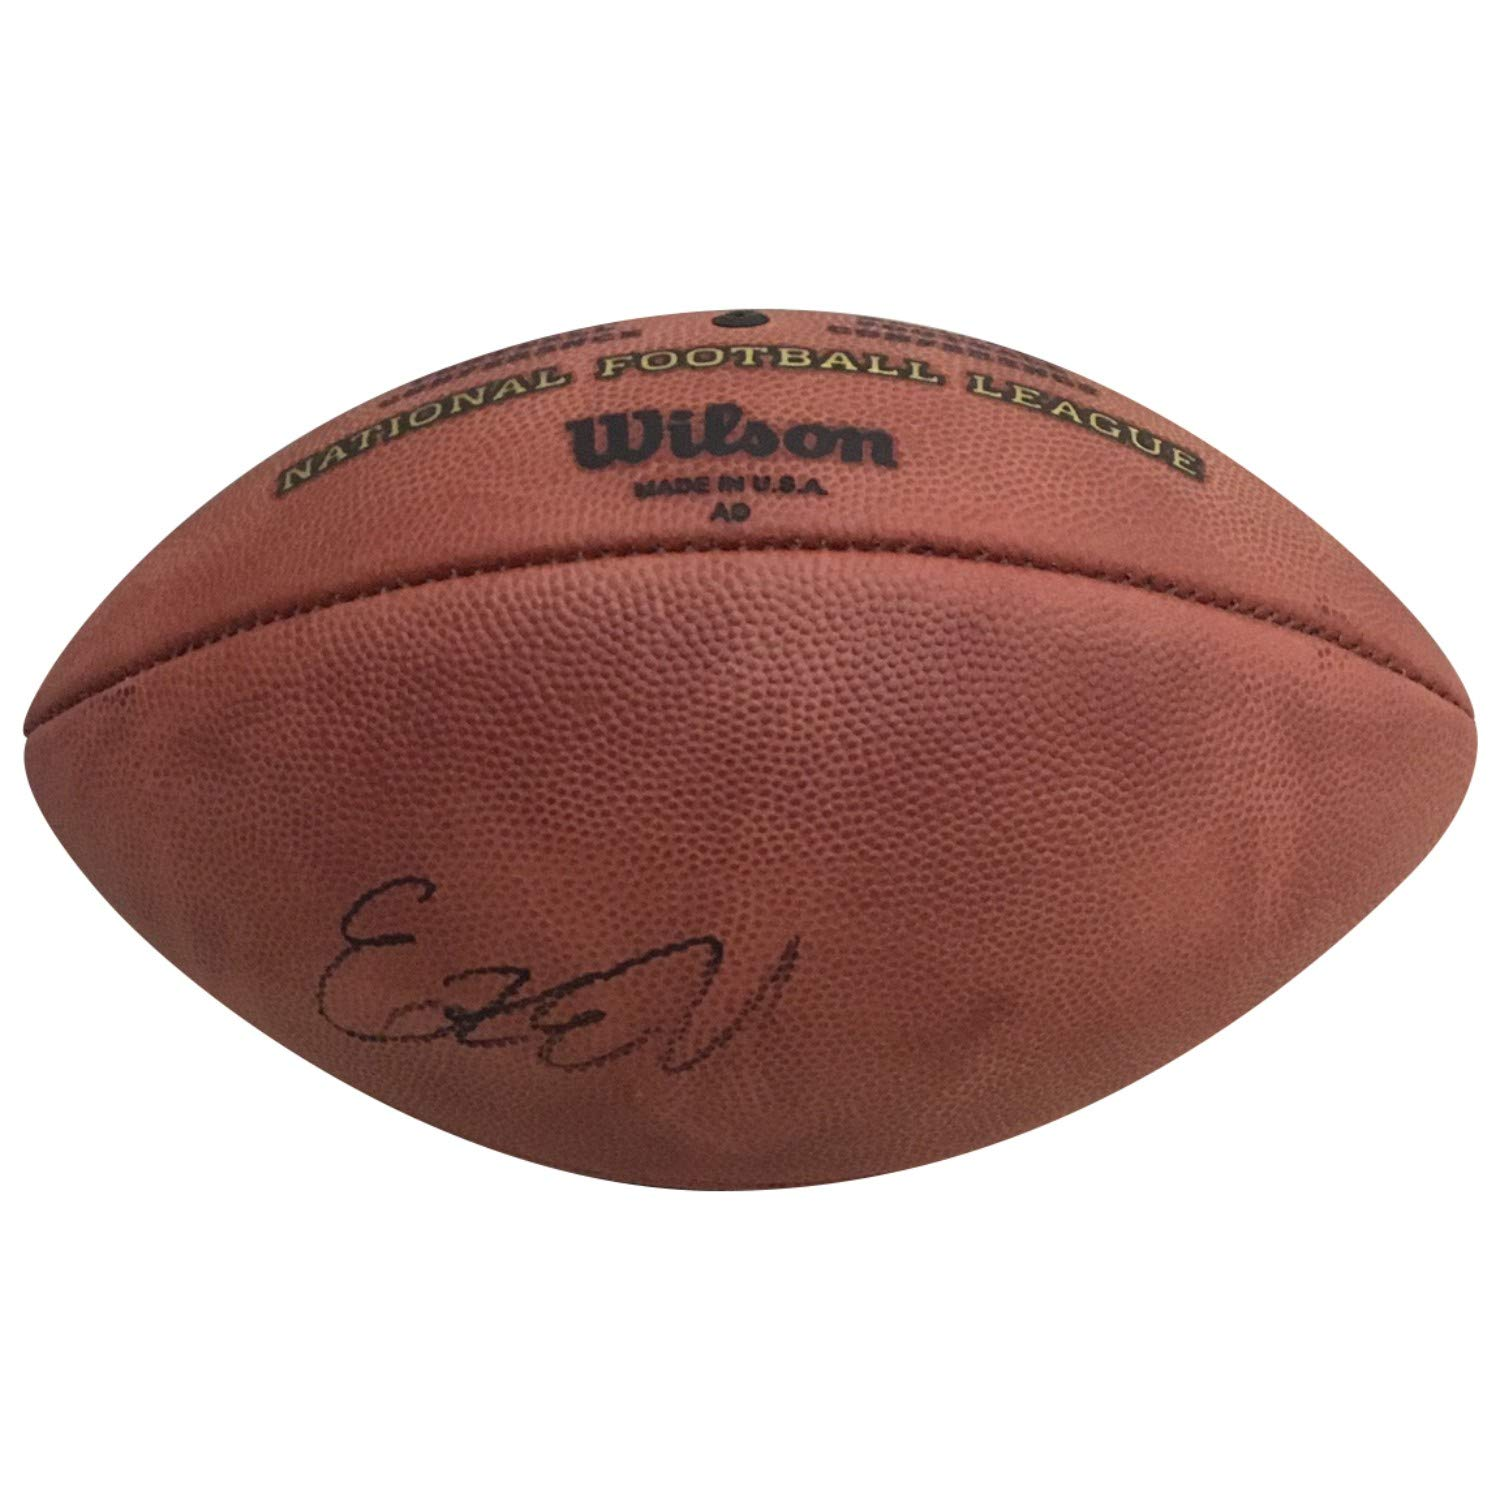 Ezekiel Elliott Dallas Cowboys Autographed NFL Authentic Duke Signed Football PSA DNA COA Powers Collectibles